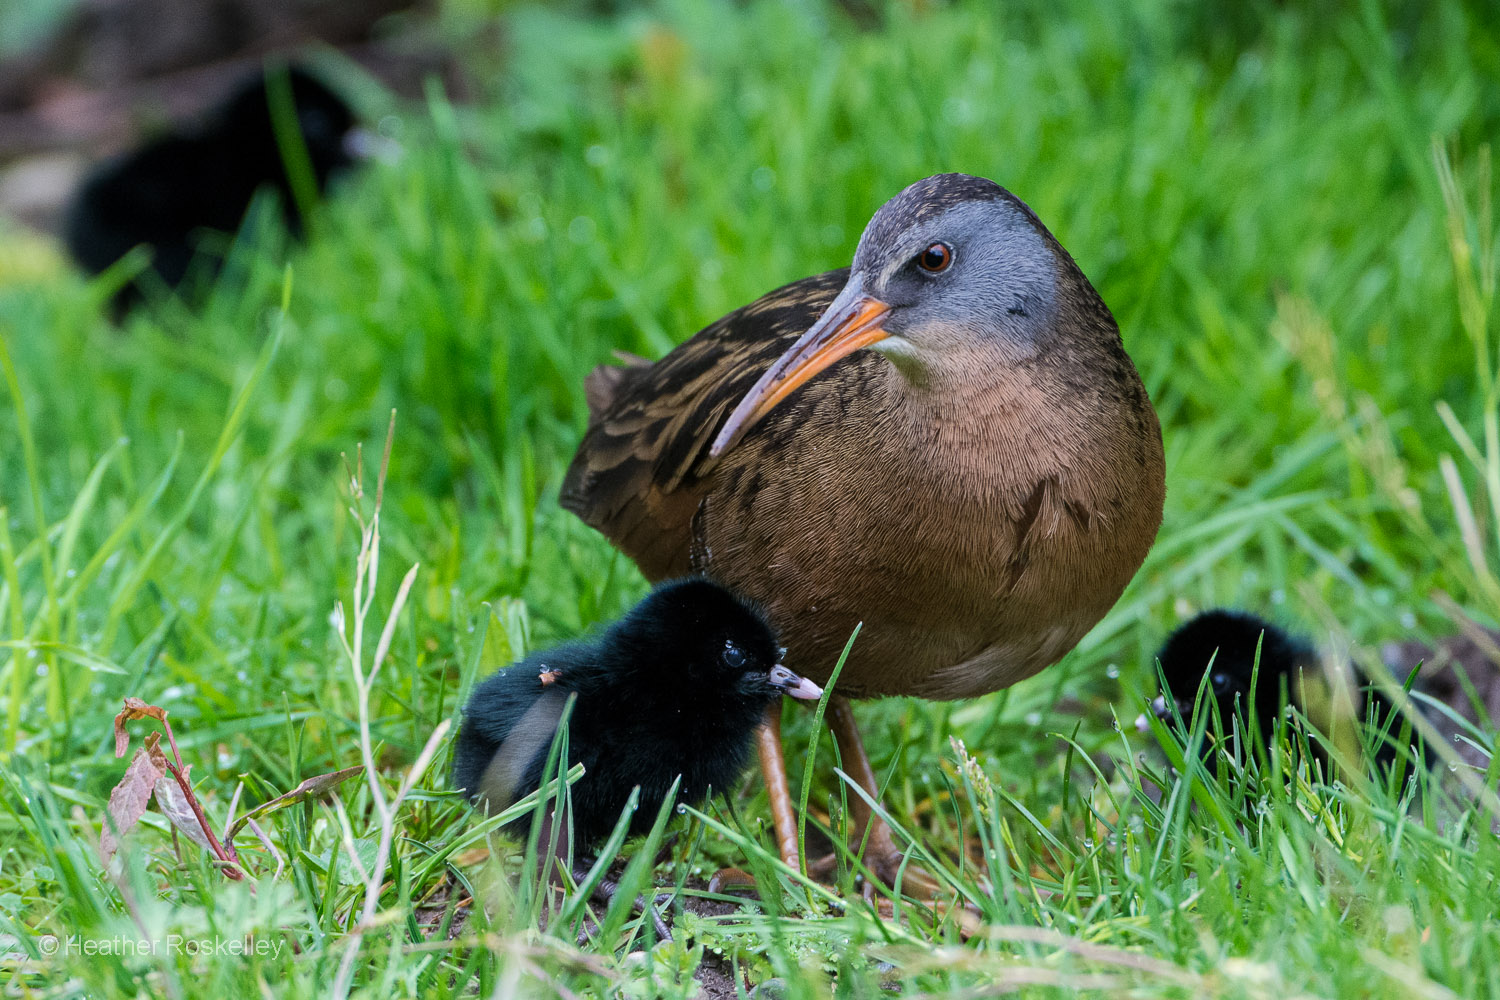 Two other chicks emerged to join their mother and sibling.